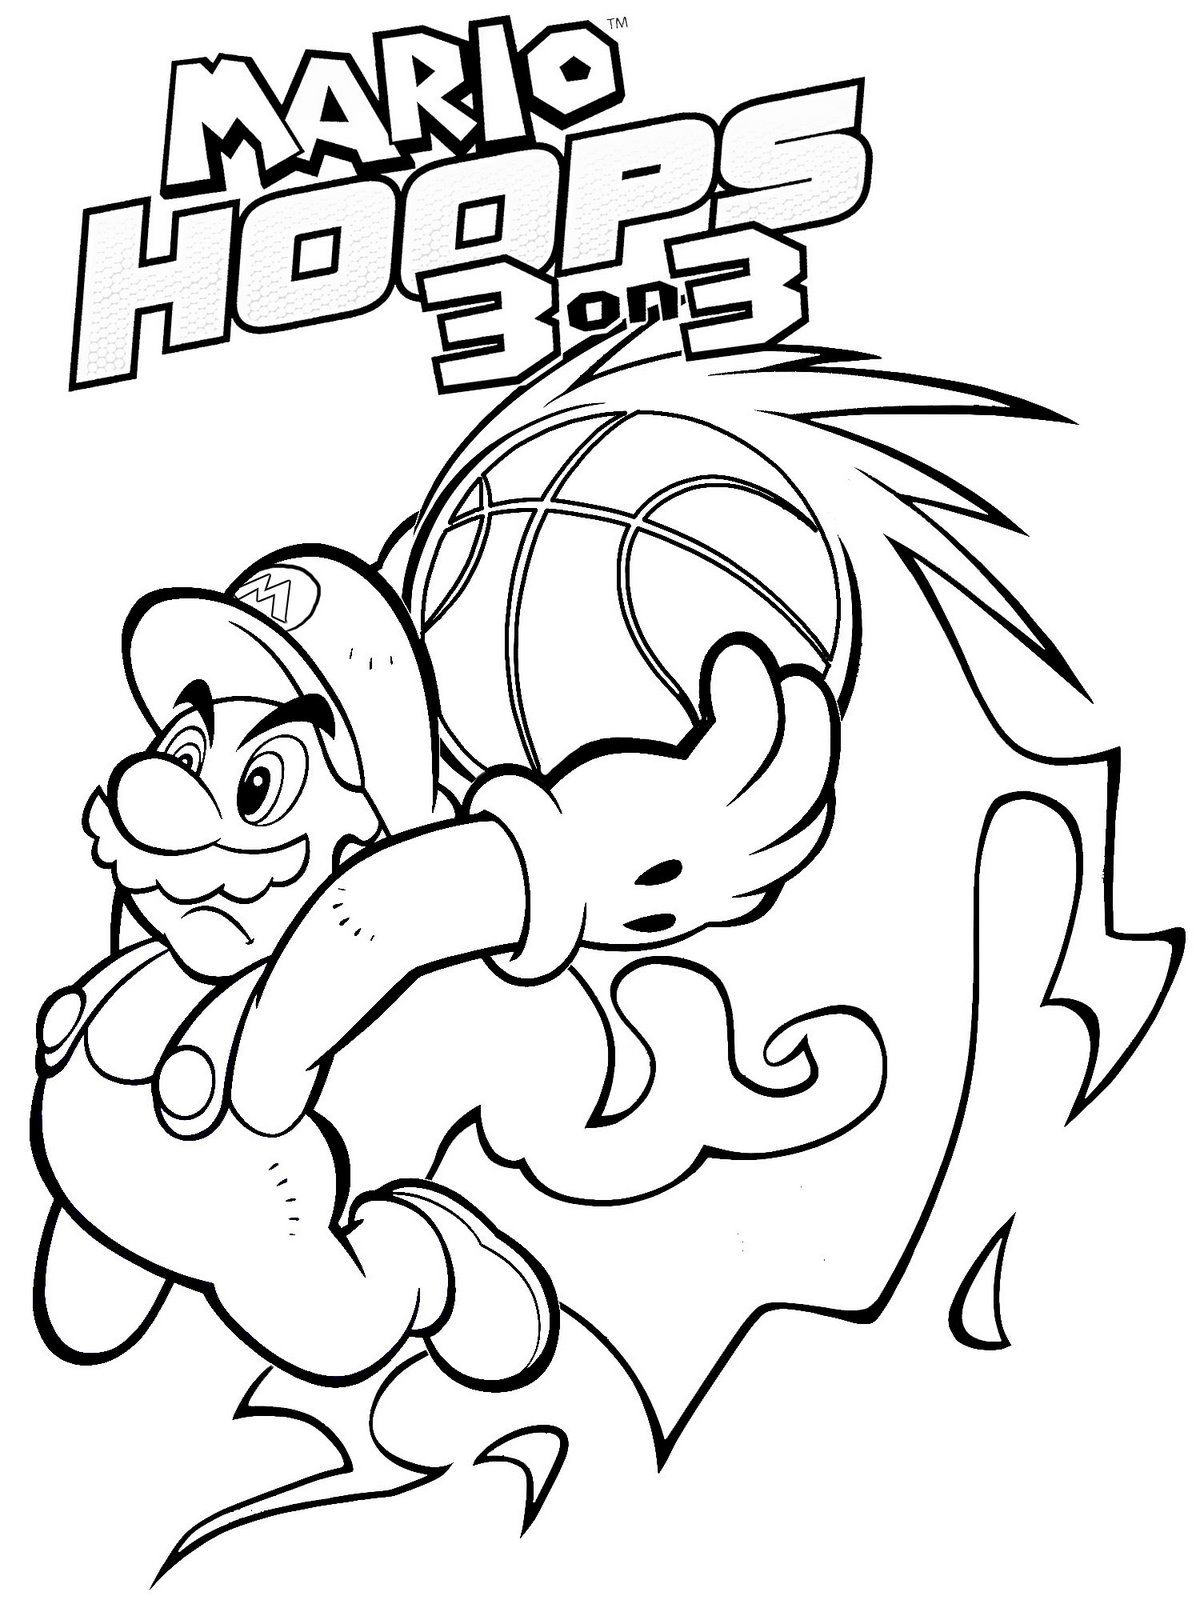 9 Free Mario Bros Coloring Pages for Kids >> Disney